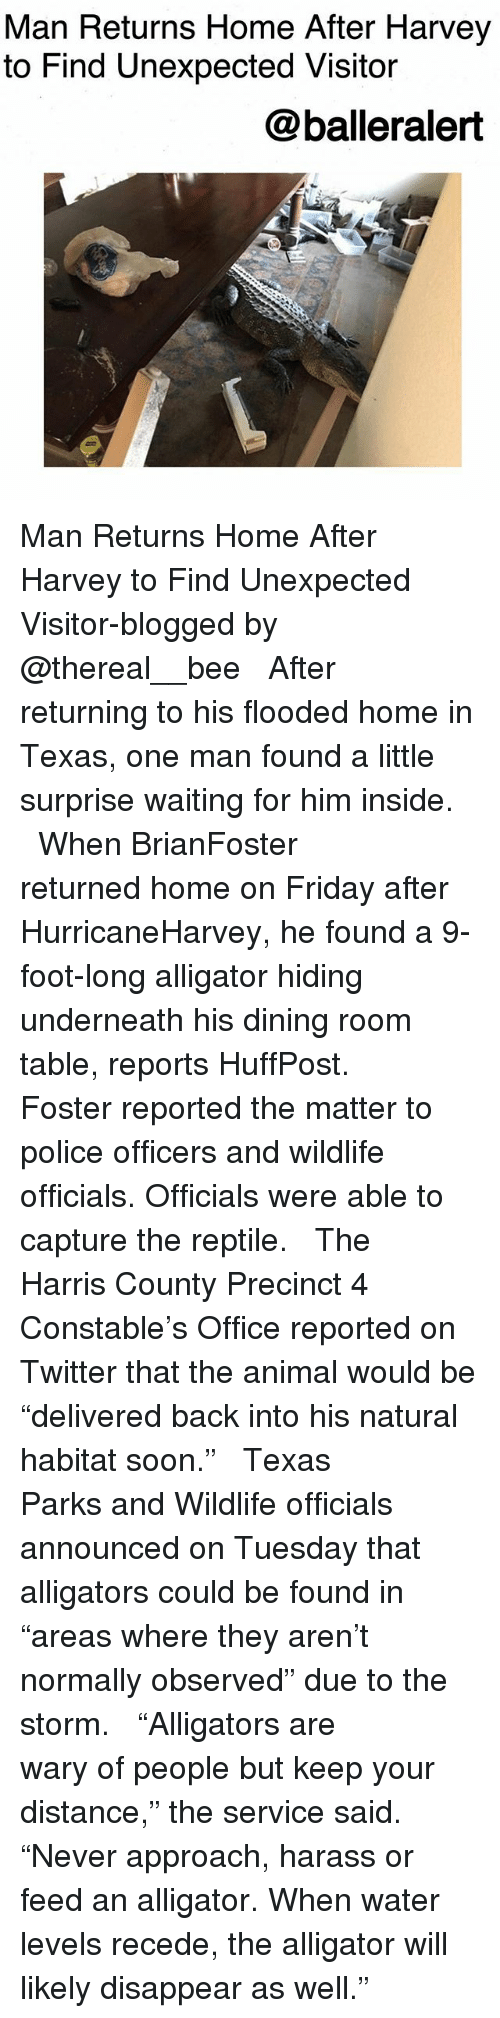 "homed: Man Returns Home After Harvey  to Find Unexpected Visitor  @balleralert Man Returns Home After Harvey to Find Unexpected Visitor-blogged by @thereal__bee ⠀⠀⠀⠀⠀⠀⠀⠀⠀ ⠀⠀ After returning to his flooded home in Texas, one man found a little surprise waiting for him inside. ⠀⠀⠀⠀⠀⠀⠀⠀⠀ ⠀⠀ When BrianFoster returned home on Friday after HurricaneHarvey, he found a 9-foot-long alligator hiding underneath his dining room table, reports HuffPost. ⠀⠀⠀⠀⠀⠀⠀⠀⠀ ⠀⠀ Foster reported the matter to police officers and wildlife officials. Officials were able to capture the reptile. ⠀⠀⠀⠀⠀⠀⠀⠀⠀ ⠀⠀ The Harris County Precinct 4 Constable's Office reported on Twitter that the animal would be ""delivered back into his natural habitat soon."" ⠀⠀⠀⠀⠀⠀⠀⠀⠀ ⠀⠀ Texas Parks and Wildlife officials announced on Tuesday that alligators could be found in ""areas where they aren't normally observed"" due to the storm. ⠀⠀⠀⠀⠀⠀⠀⠀⠀ ⠀⠀ ""Alligators are wary of people but keep your distance,"" the service said. ""Never approach, harass or feed an alligator. When water levels recede, the alligator will likely disappear as well."""